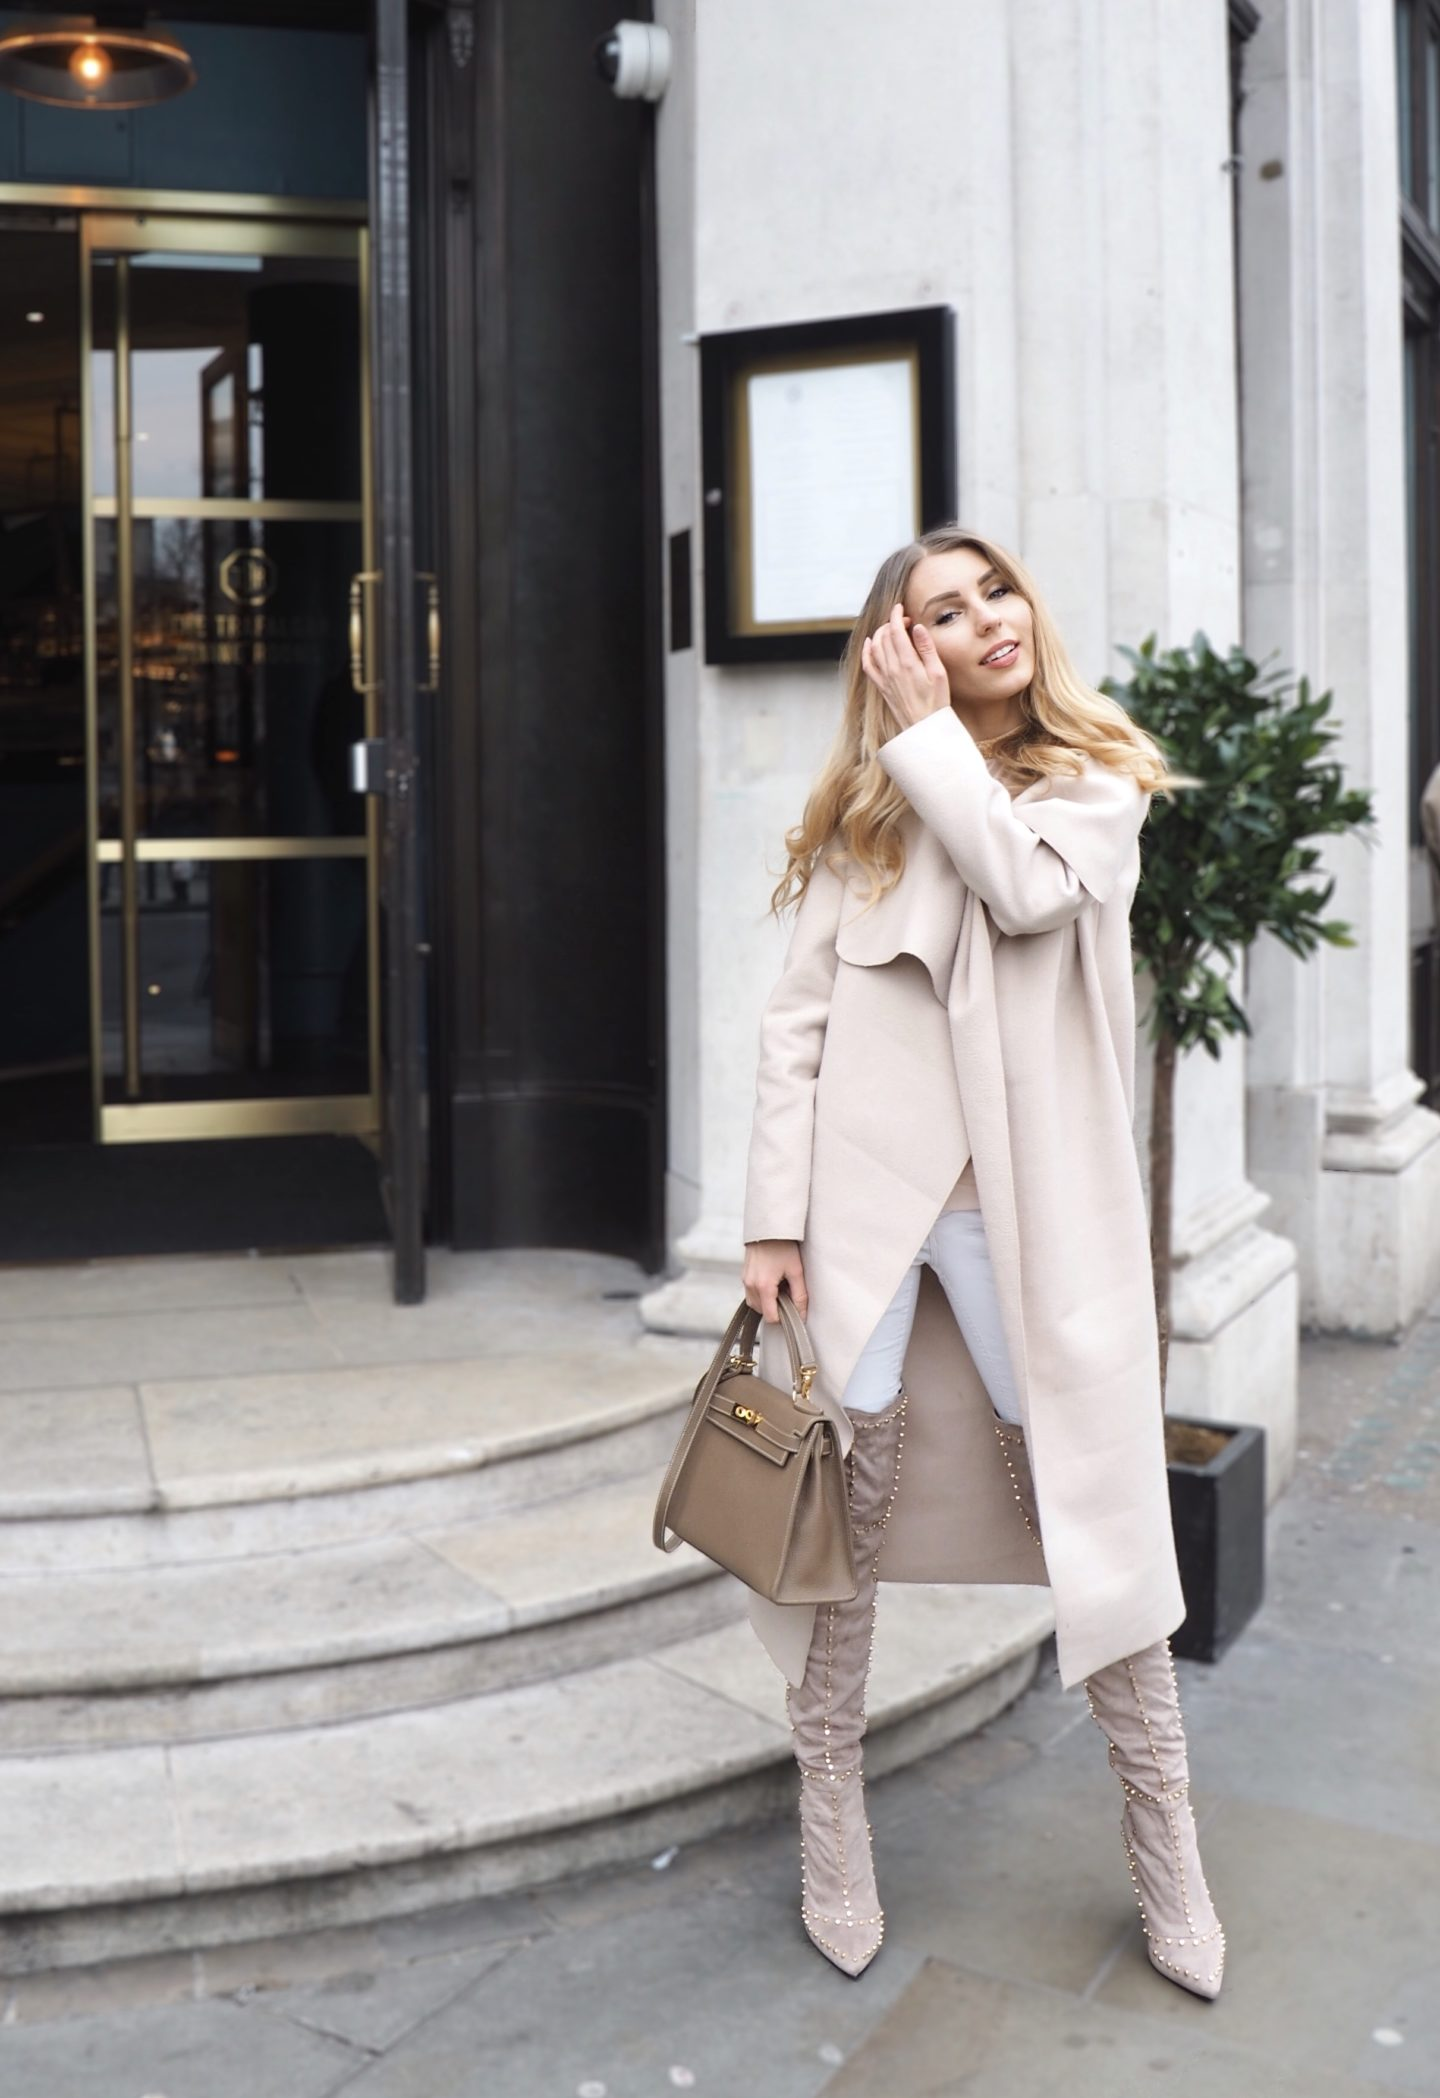 The Chic Pursuit is wearing an all nude outfit with a beige coat, beige Hermes Kelly inspired handbag, beige over the knee boots and a Sarah Ashcroft x In The Style nude mesh dress